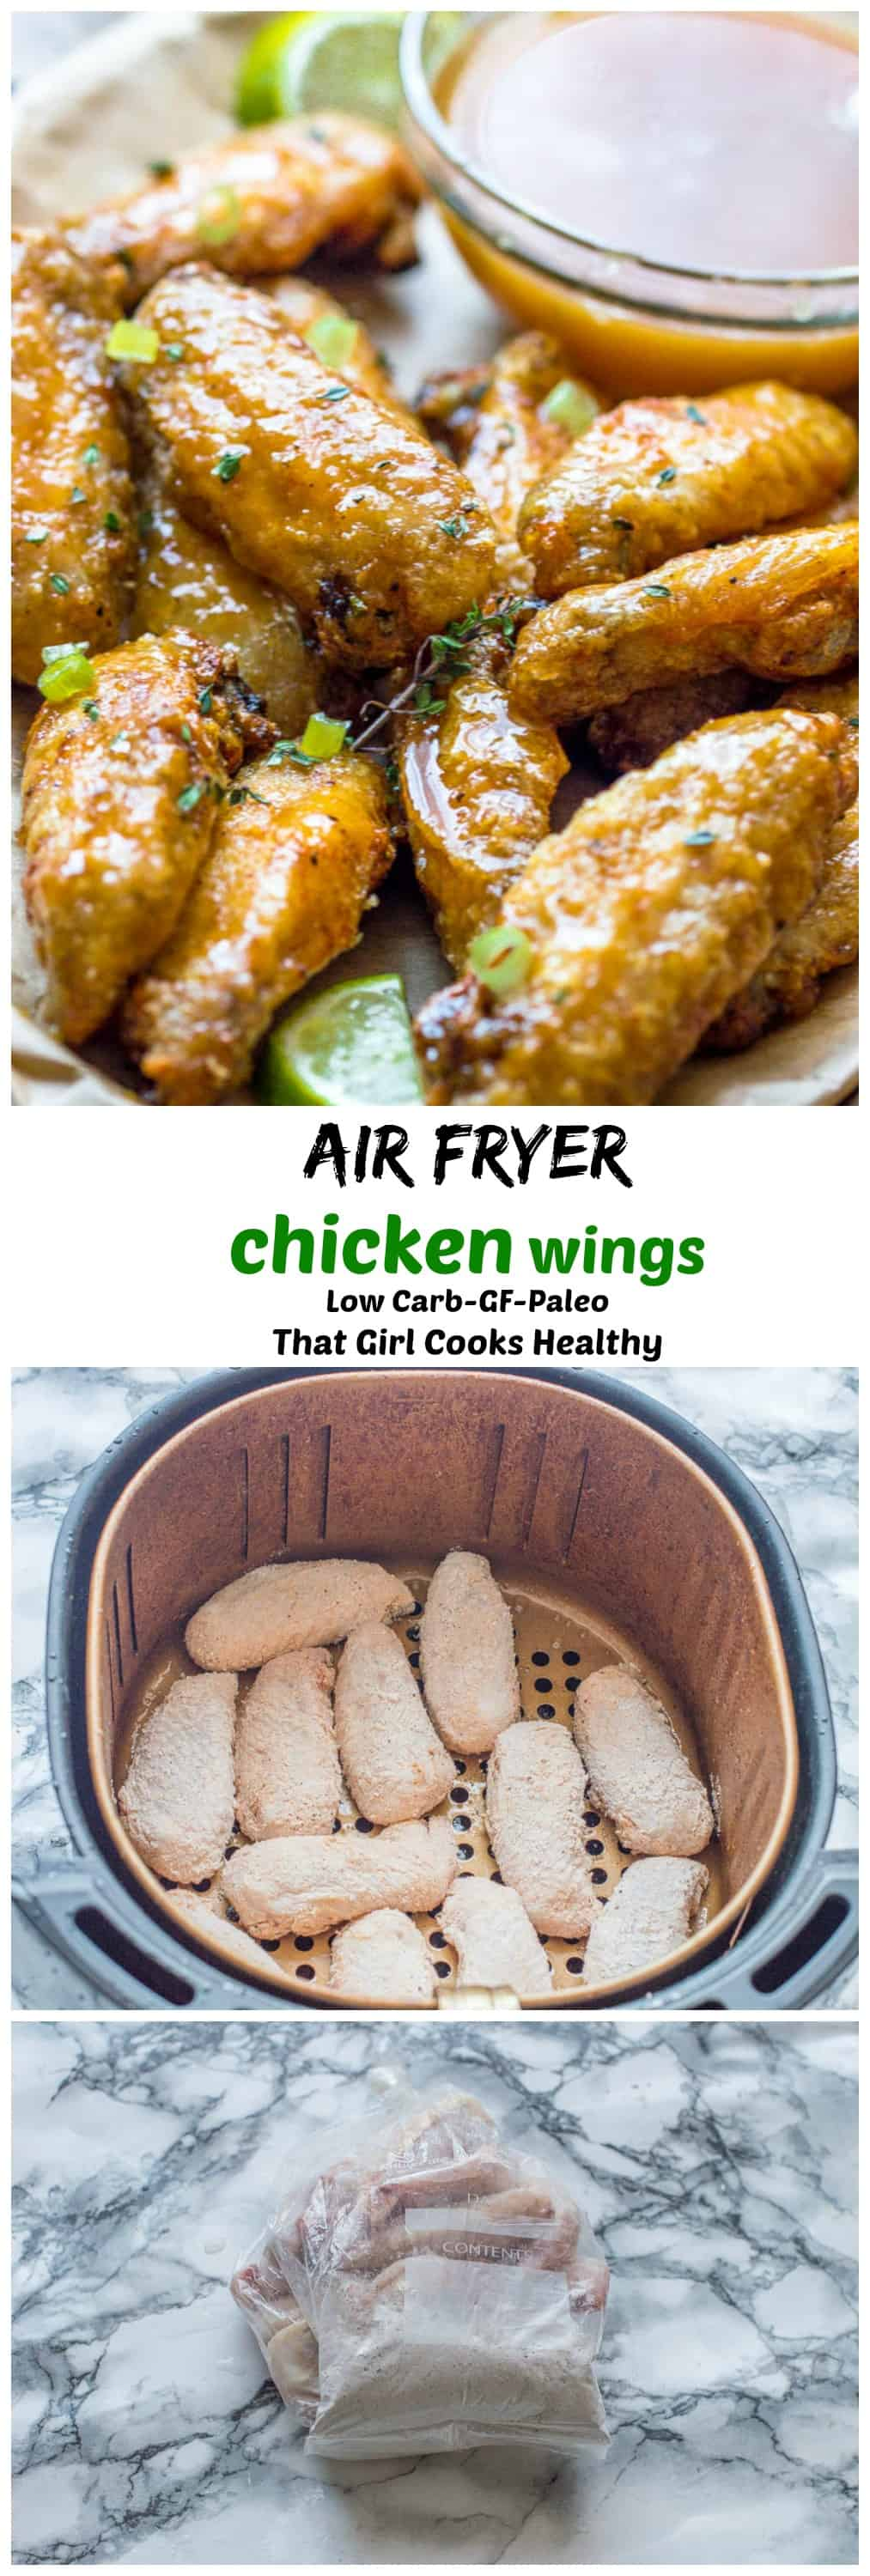 Crispy air fryer chicken wings, these low carb, paleo friendly wings are coated with a sweet pineapple glaze